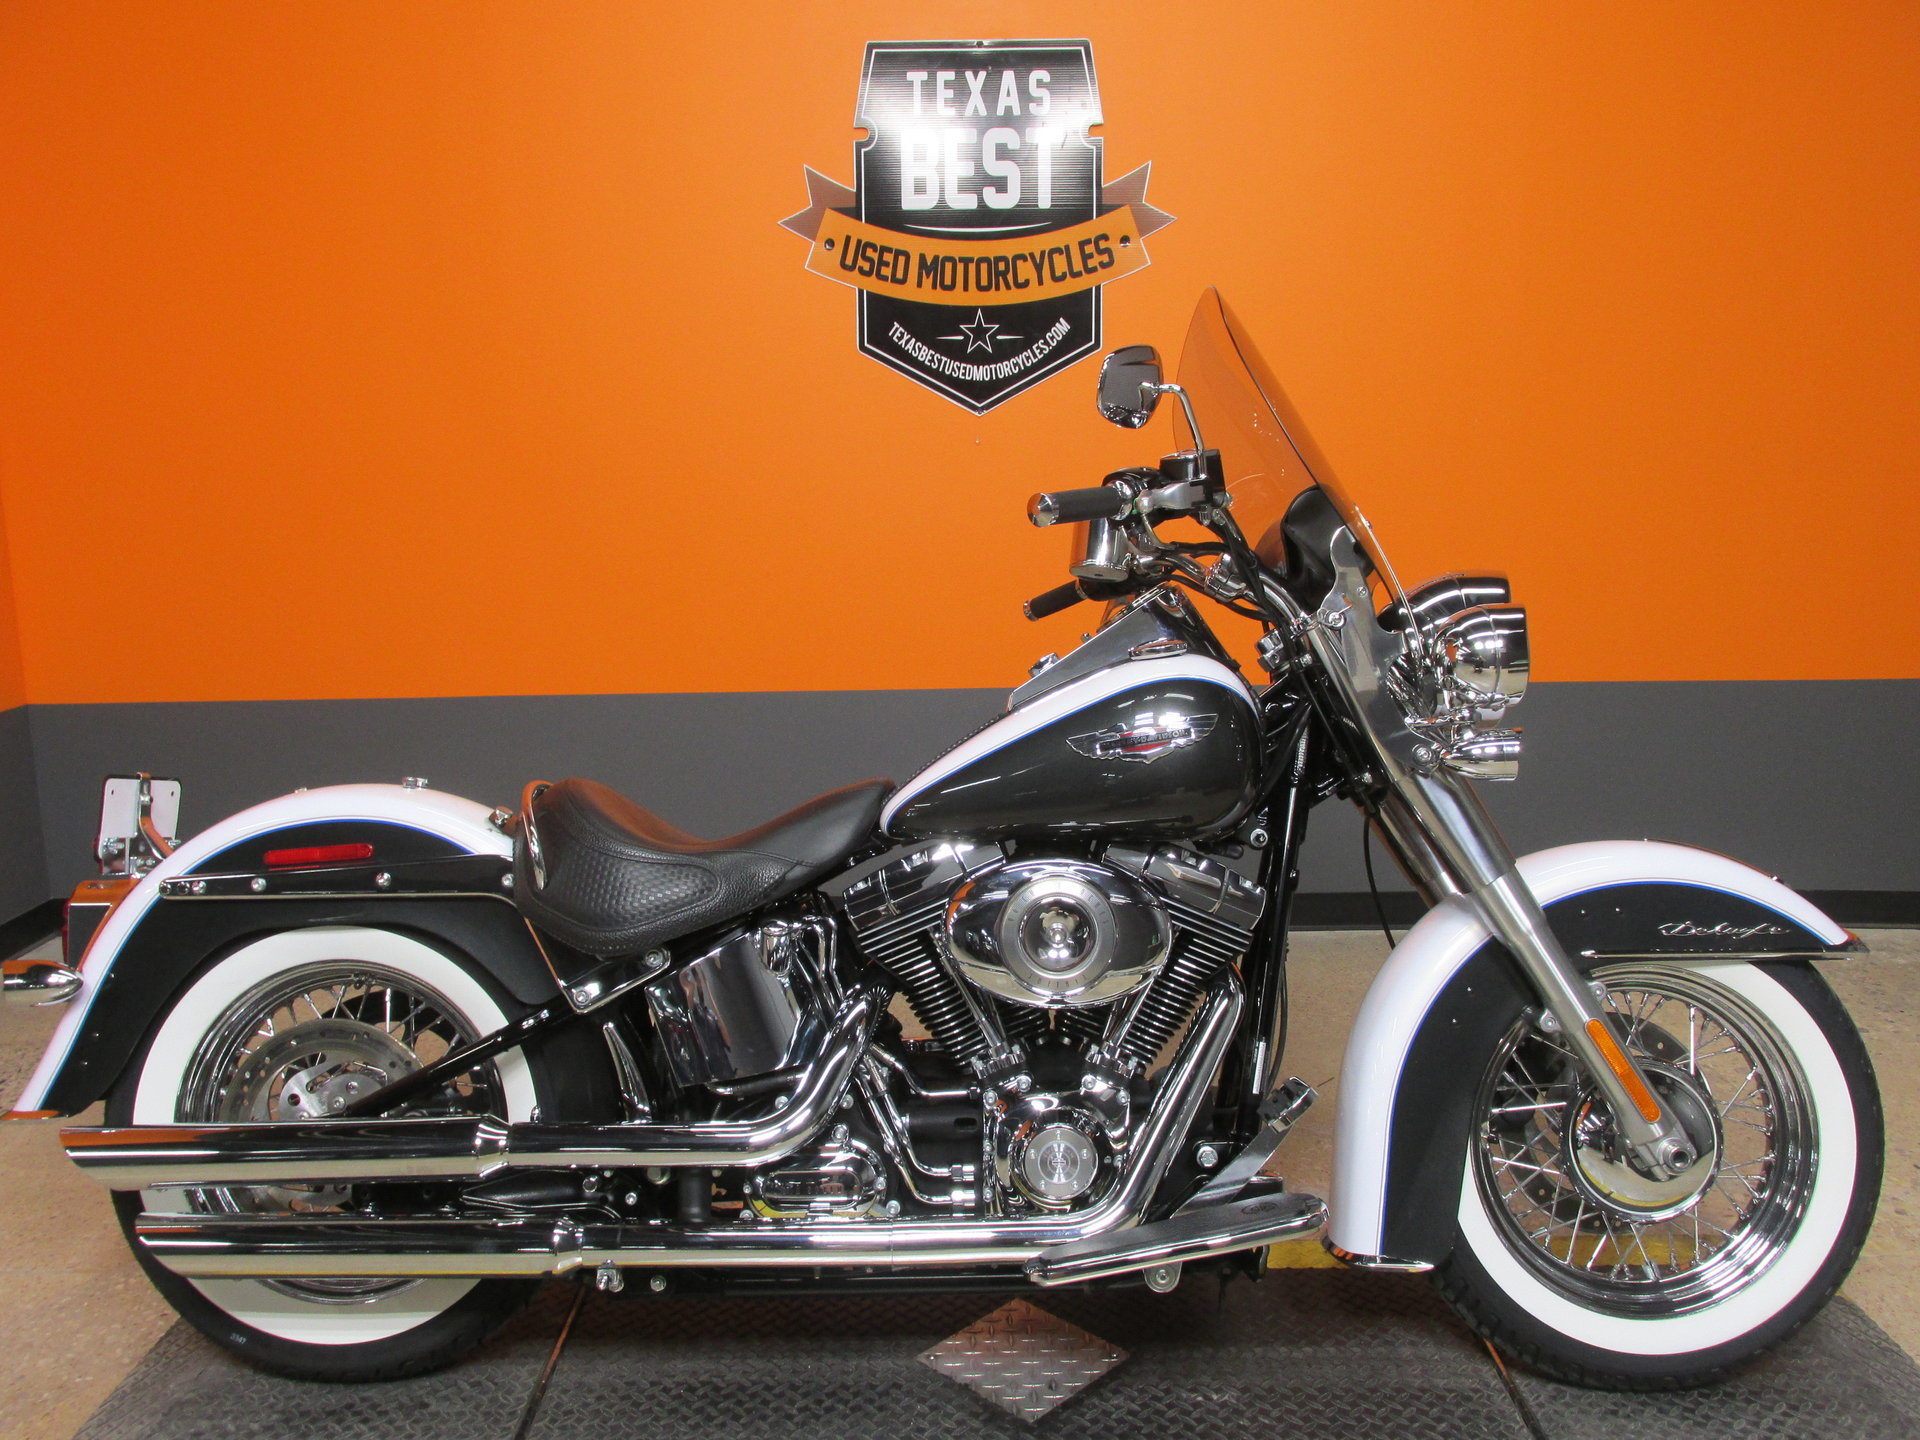 2008 harley davidson softail deluxe flstn for sale 93754 mcg. Black Bedroom Furniture Sets. Home Design Ideas